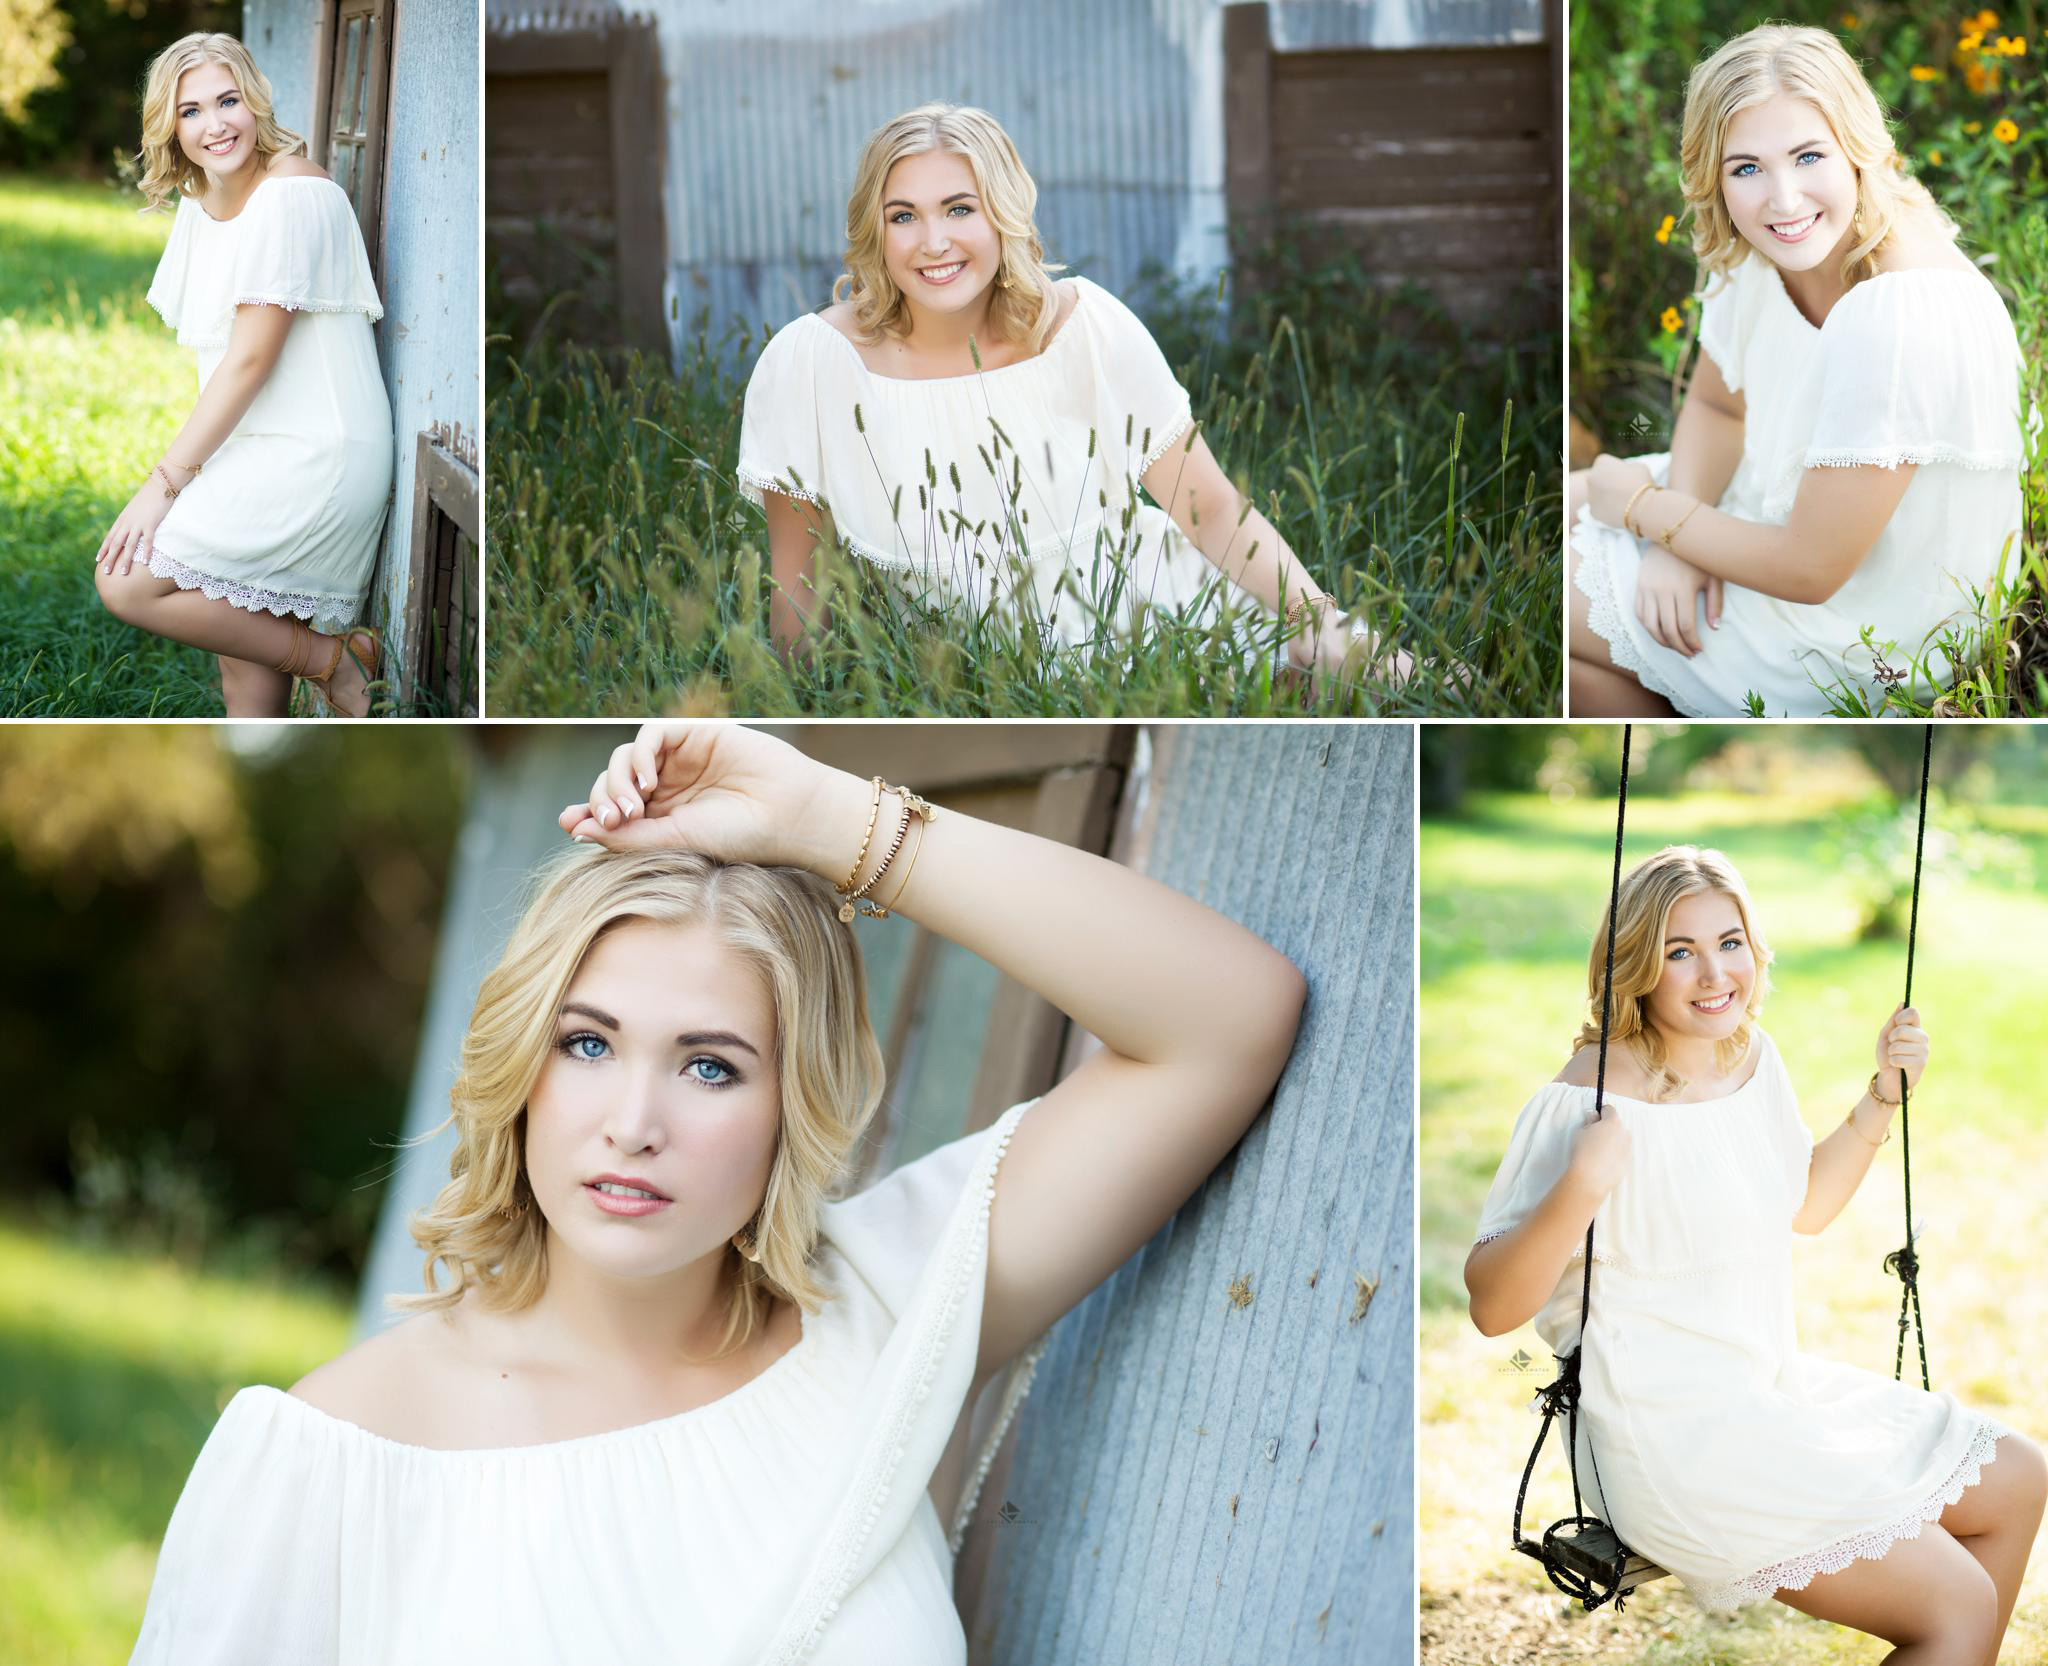 Rustic Senior by Katie Swatek Photography | White Dress Senior Images by Katie Swatek Photography